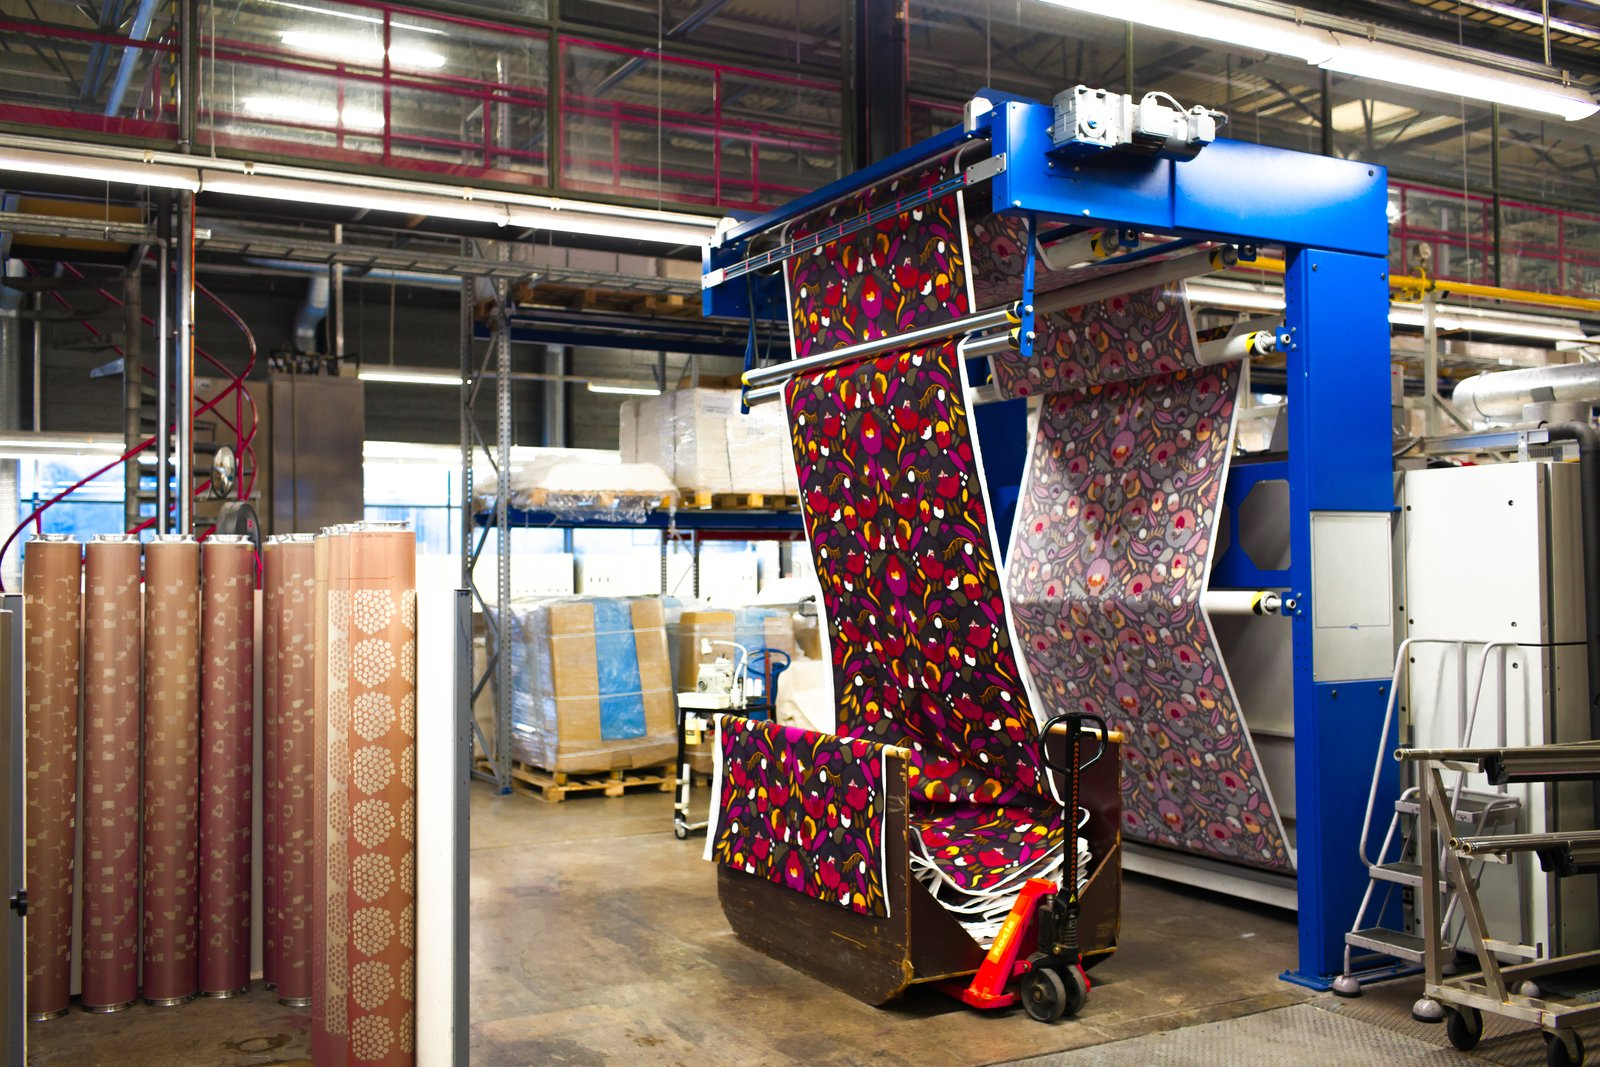 Once printed, fabrics are run through a mechanical dryer, which presses and sets all the layers of color in place. Marimekko's team then inspects and views each roll of textile by eye for any mistakes along process. Approved rolls are then shipped off to vendors and, in some cases, make their way onto any of the brand's myriad clothing items, products, or home accessories.  Photo 6 of 7 in For Marimekko's  Artwork Studio Manager,  Print's Not Dead